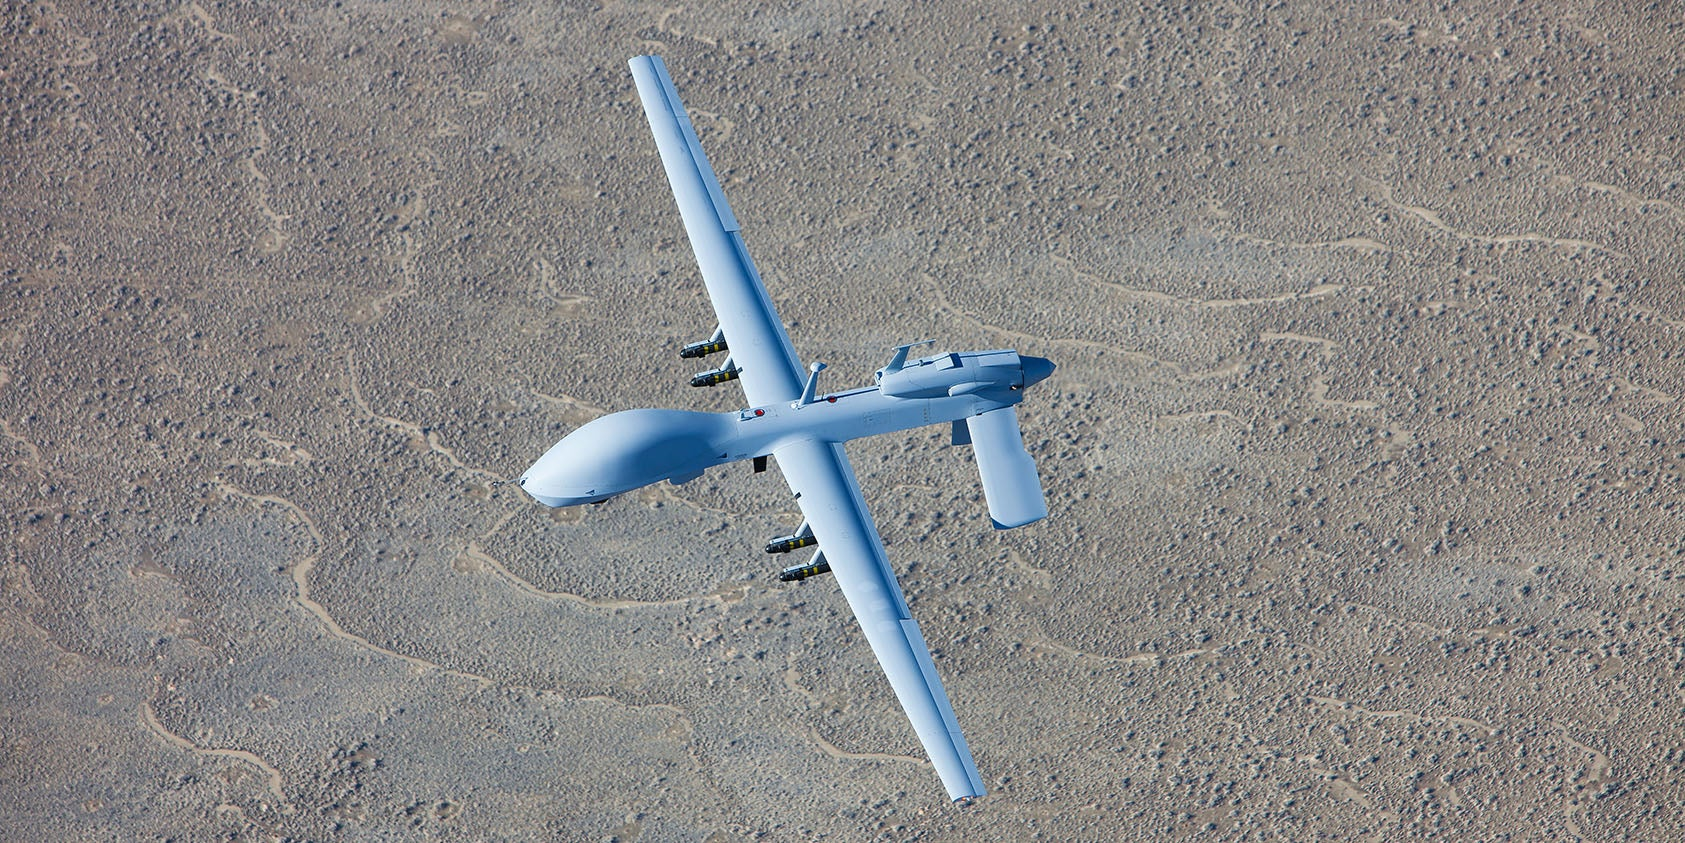 Pentagon Confirms That a Grey Eagle Drone Has Been Lost in Iraq